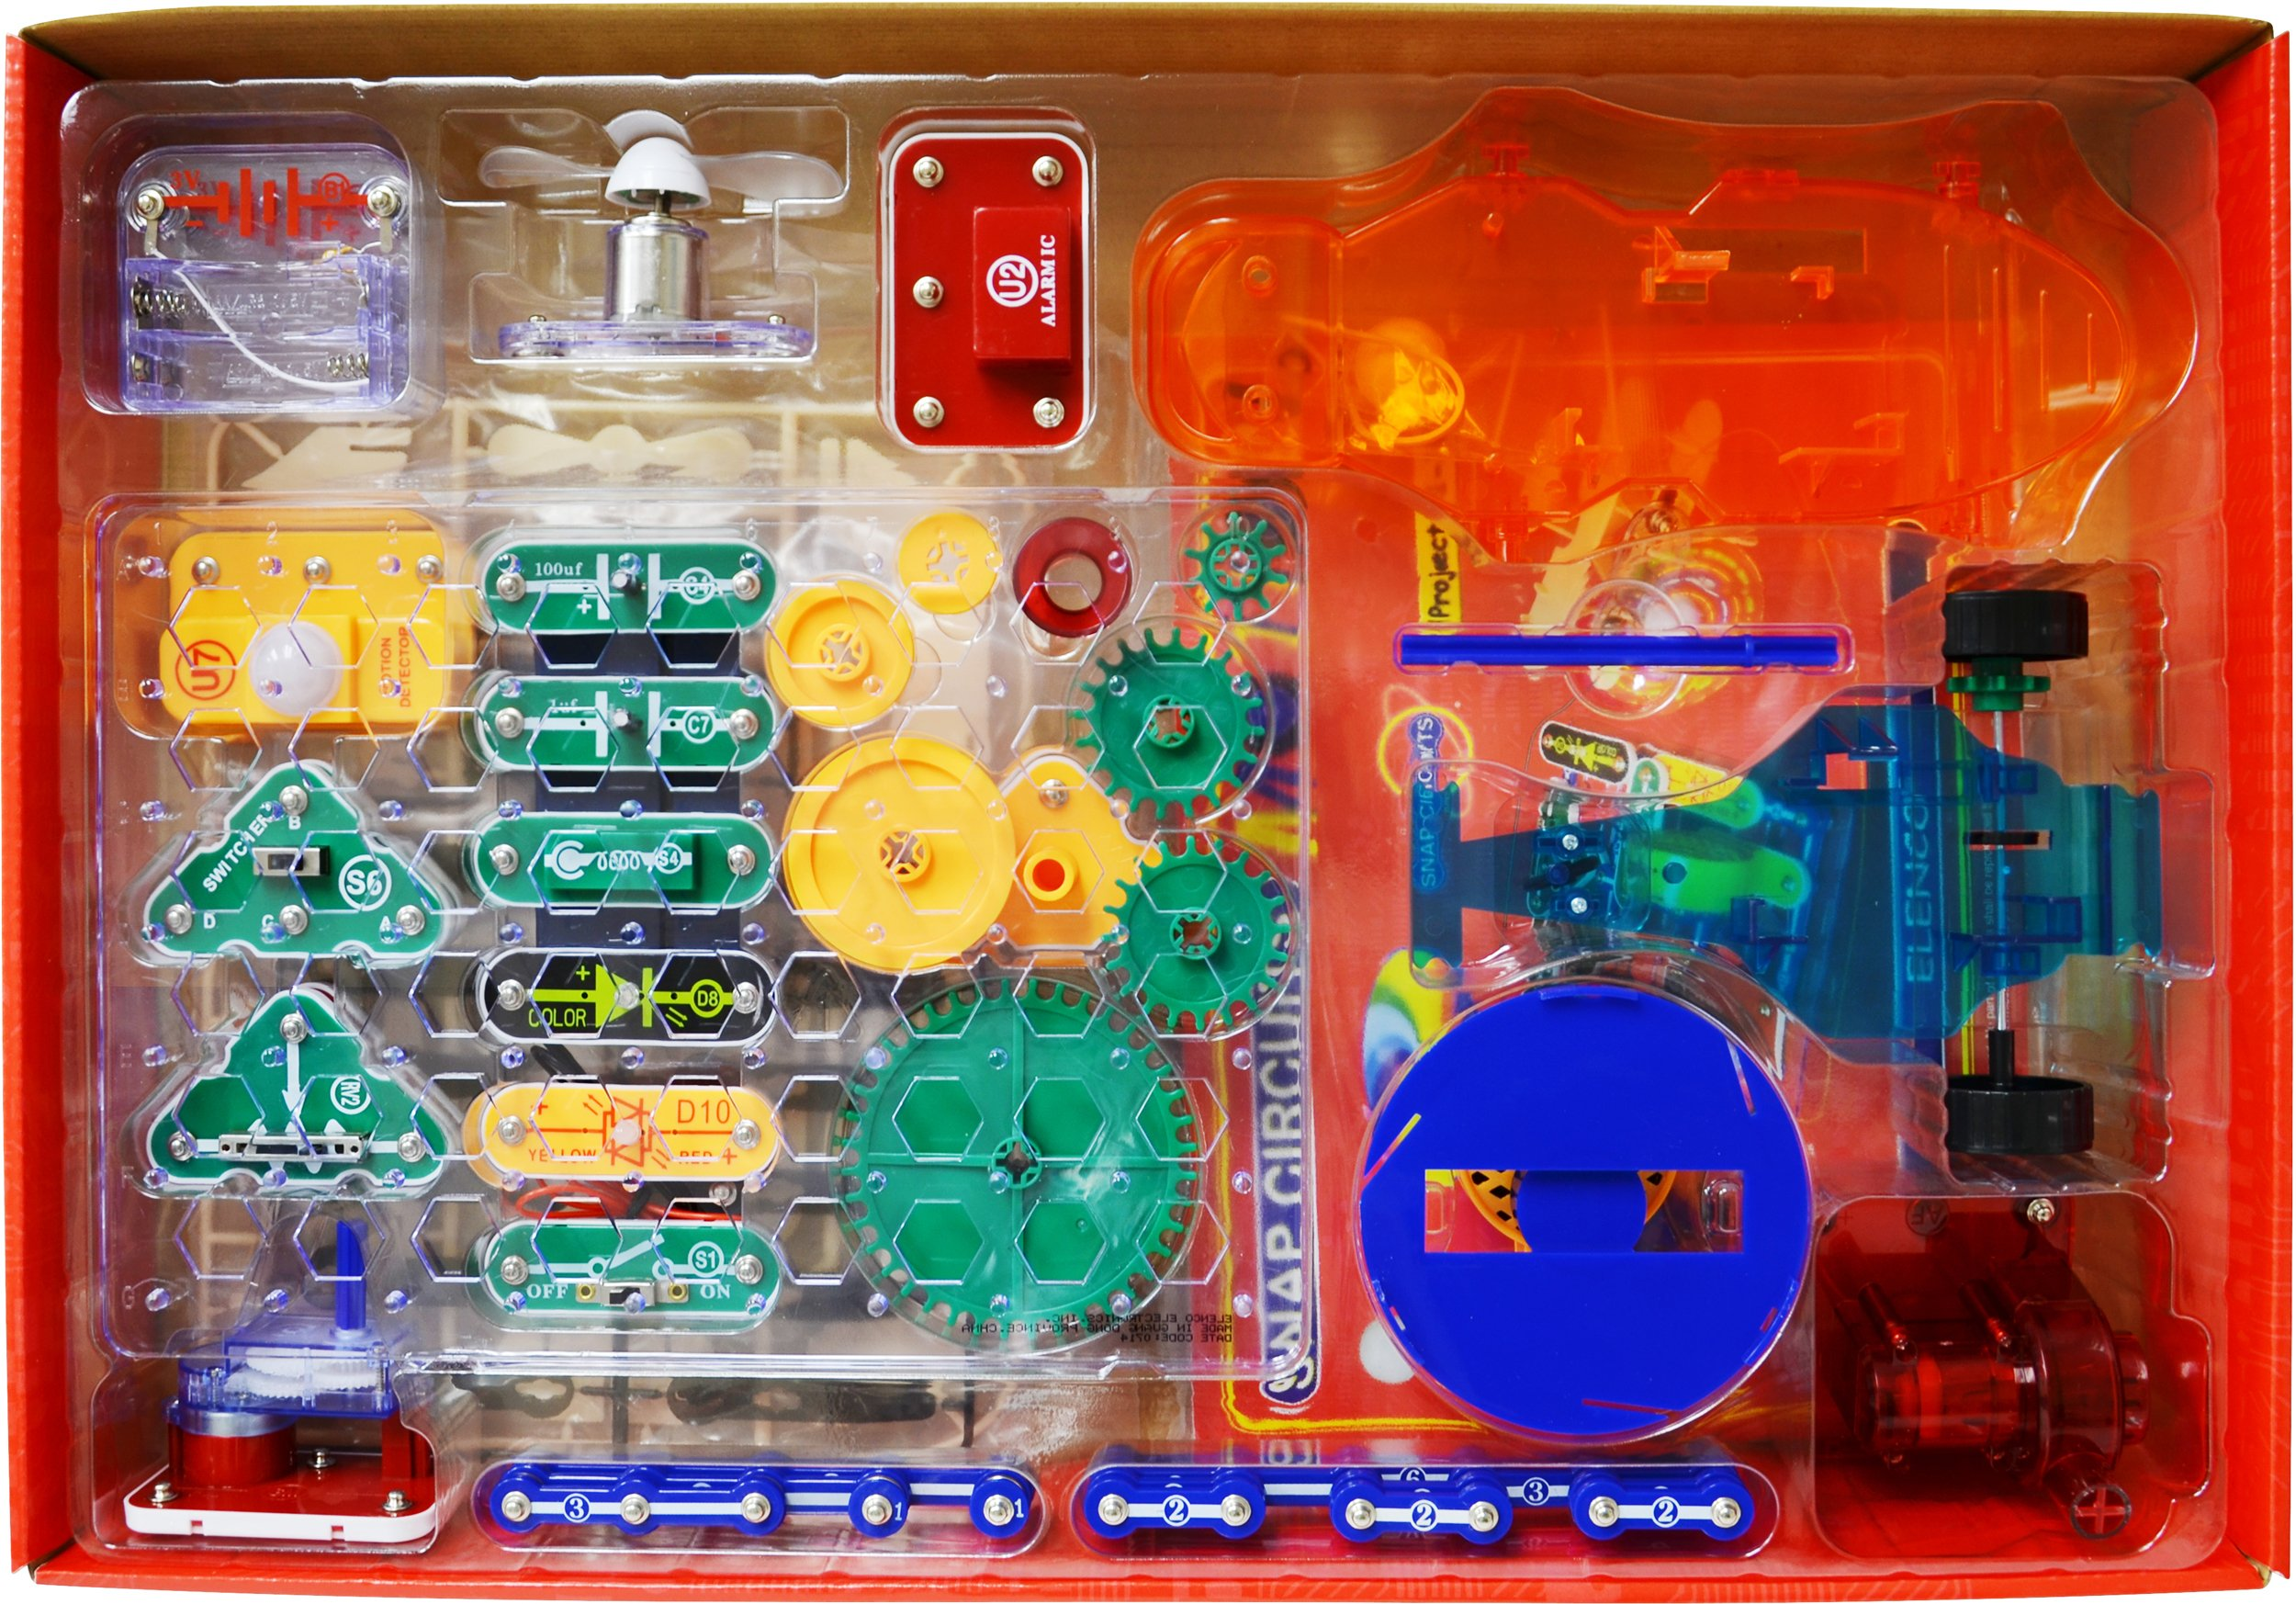 Snap Circuits Motion Electronics Exploration Kit | Over 165 Exciting STEM Projects | 4-Color Project Manual | 50+ Snap Modules | Unlimited Fun by Snap Circuits (Image #3)